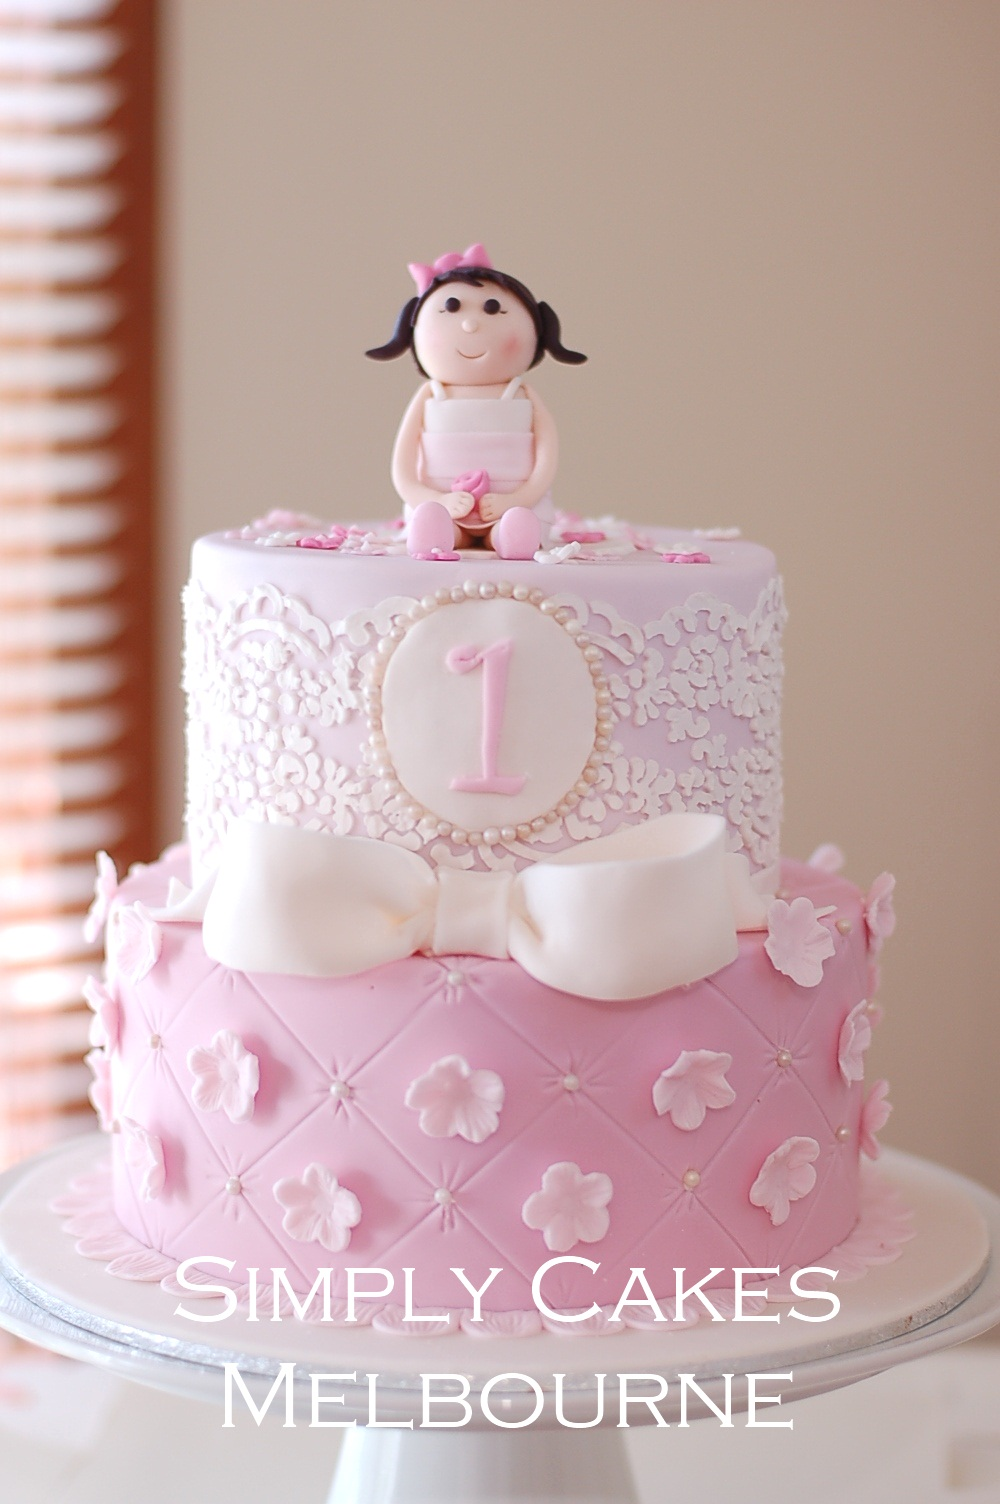 Simply Cakes Melbourne 1st birthday Princess Cake